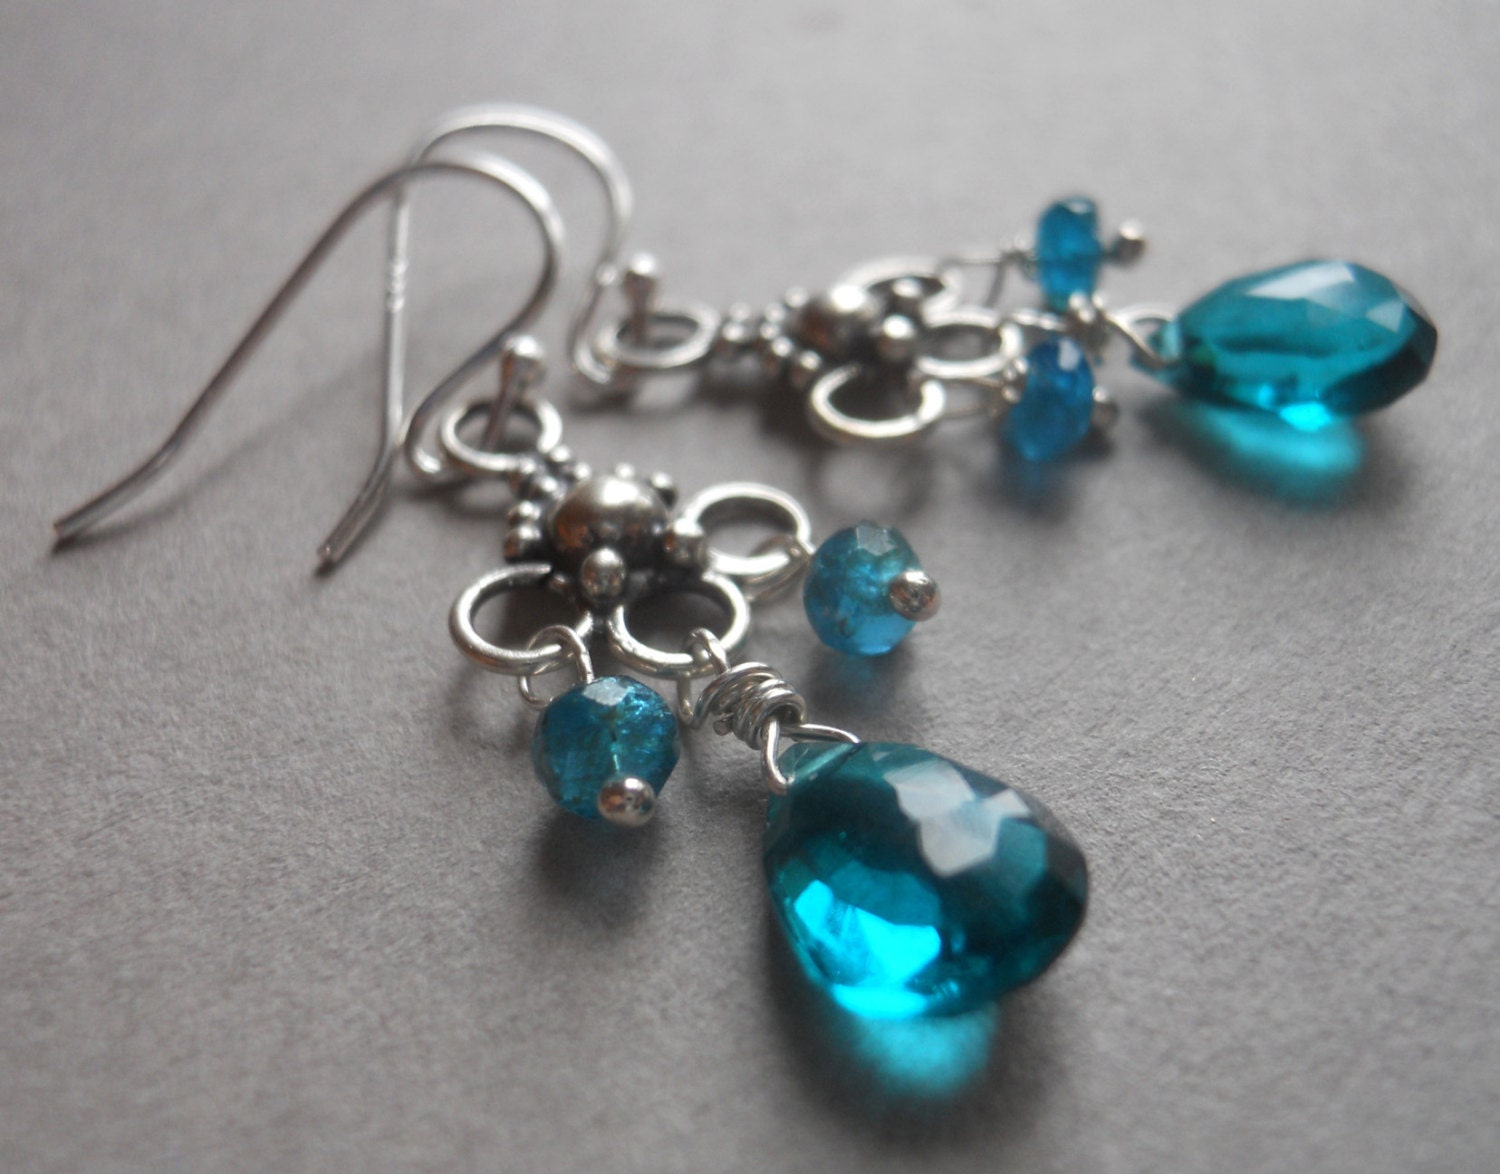 Mini chandeliers in teal quartz and apatite - $42.00 USD